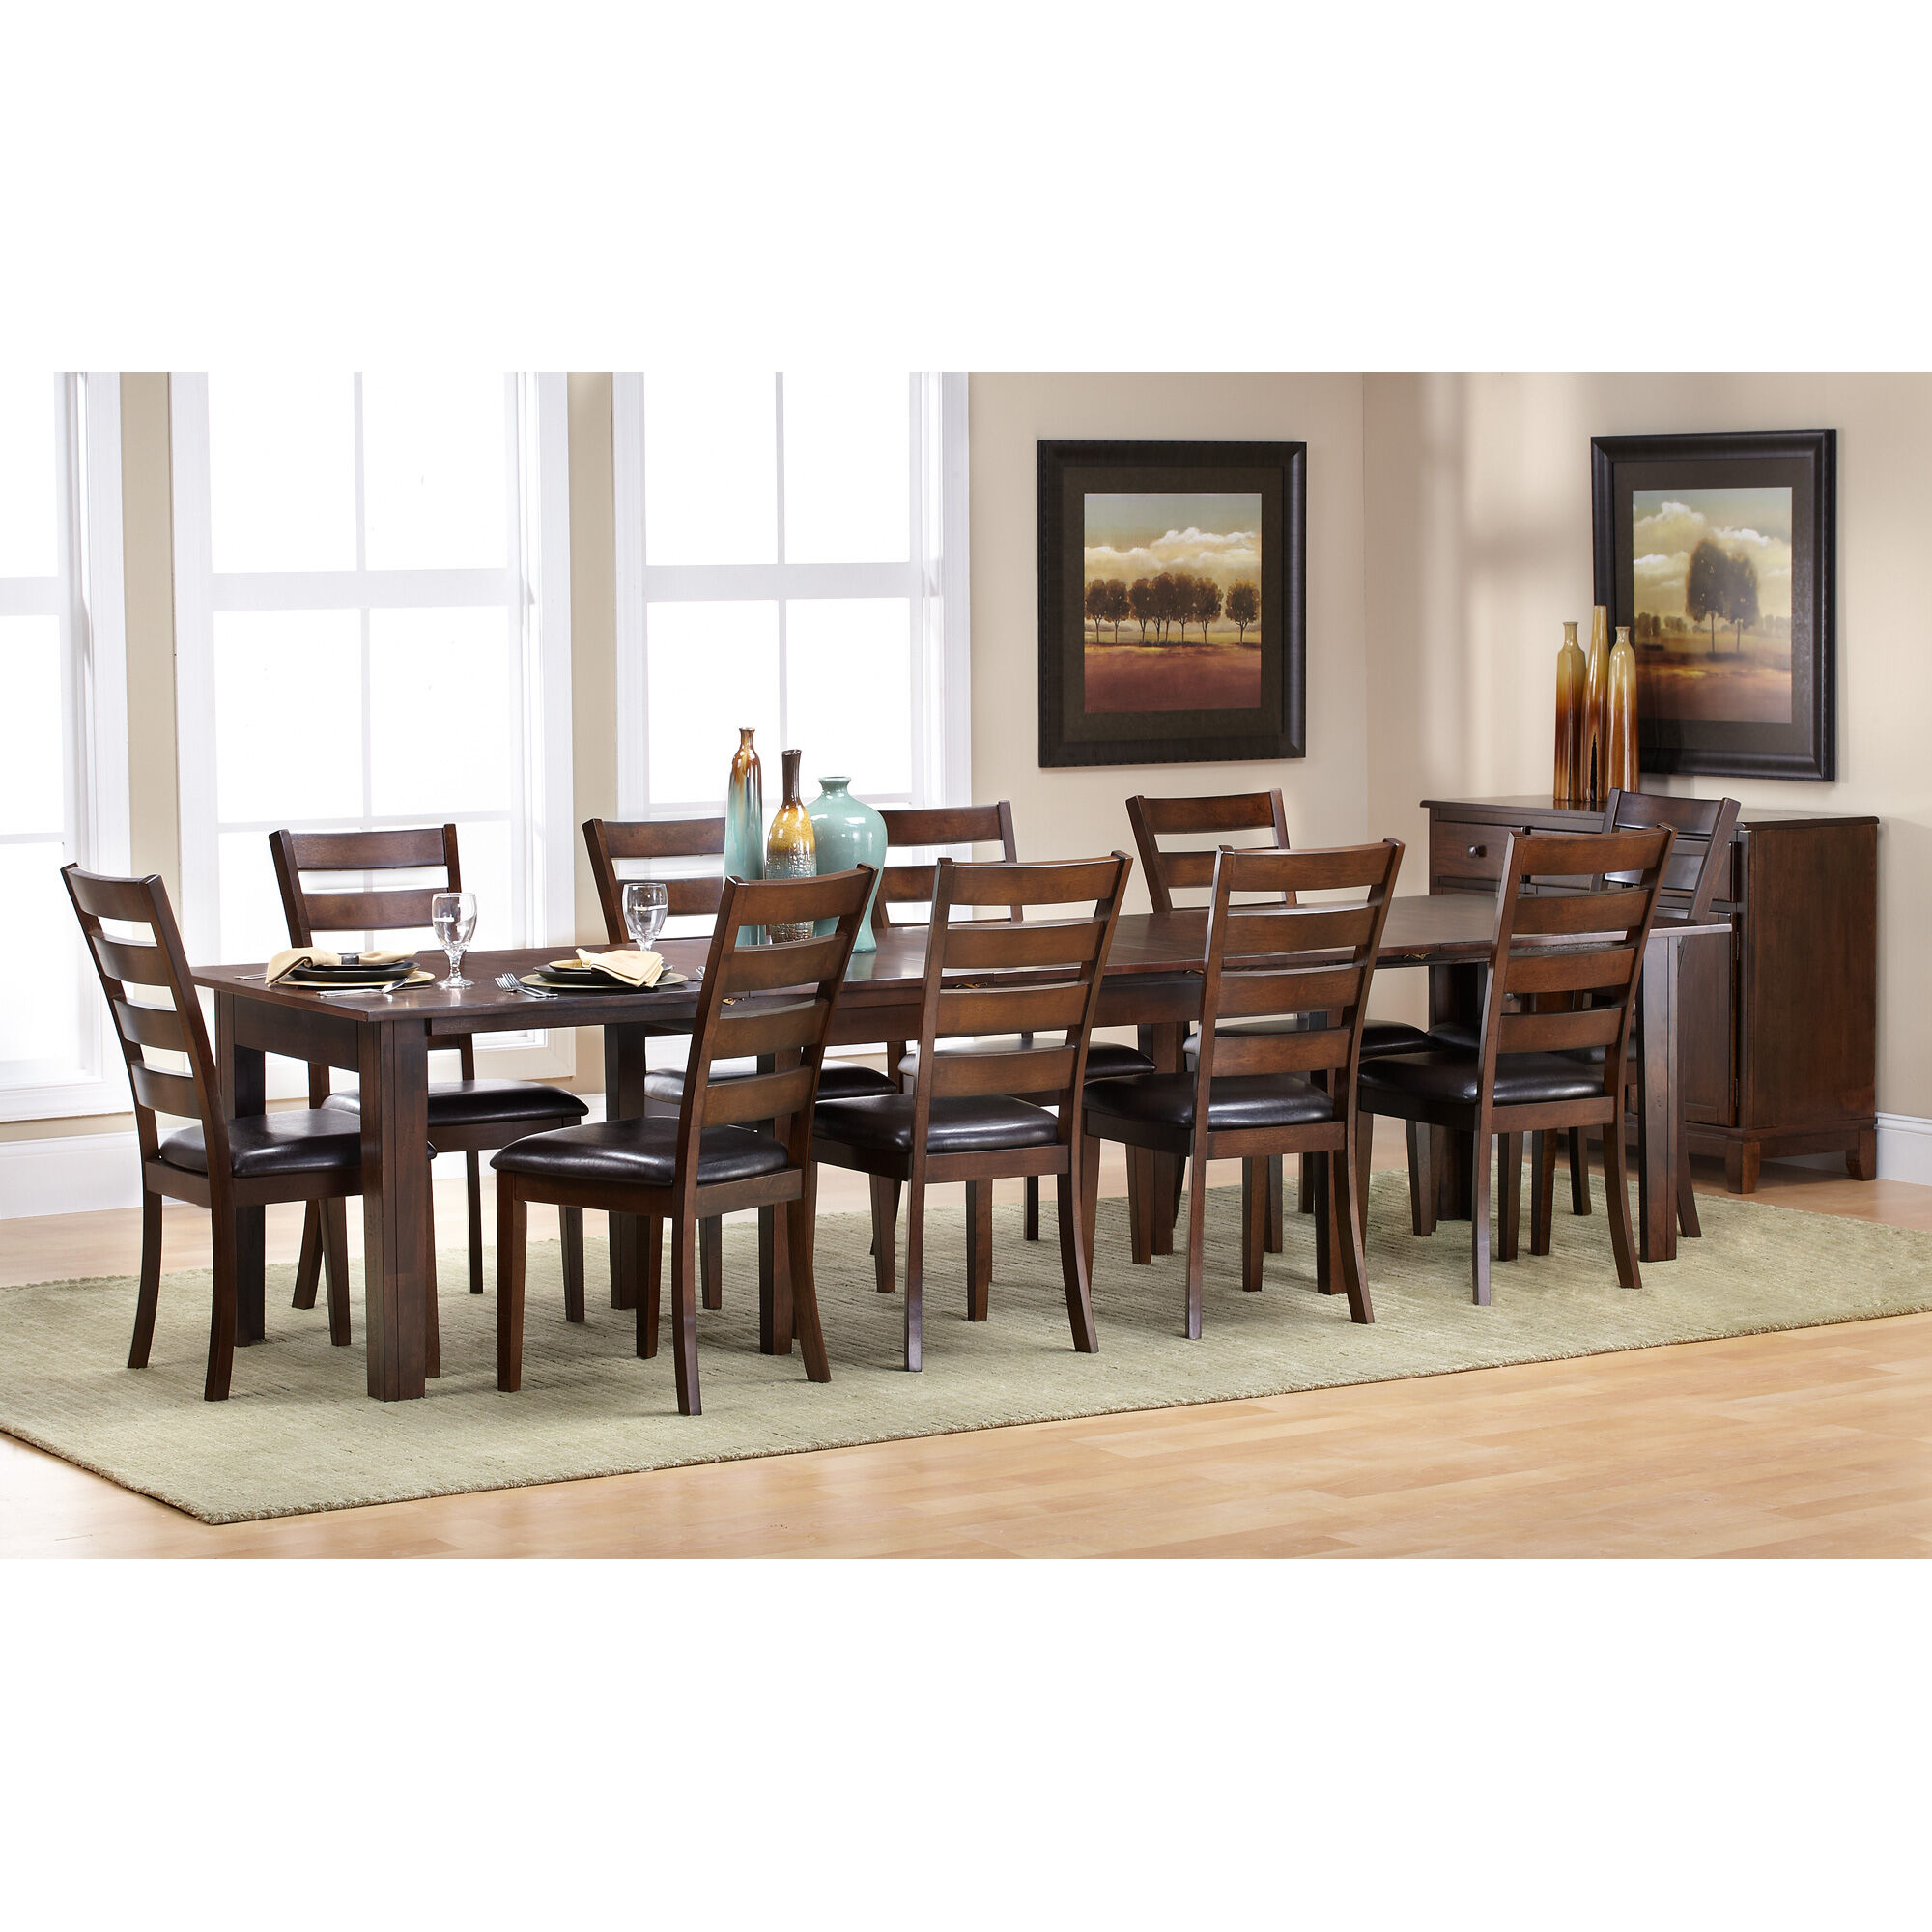 Stupendous Slumberland Furniture Kona Raisin 11 Piece Dining Set Gmtry Best Dining Table And Chair Ideas Images Gmtryco